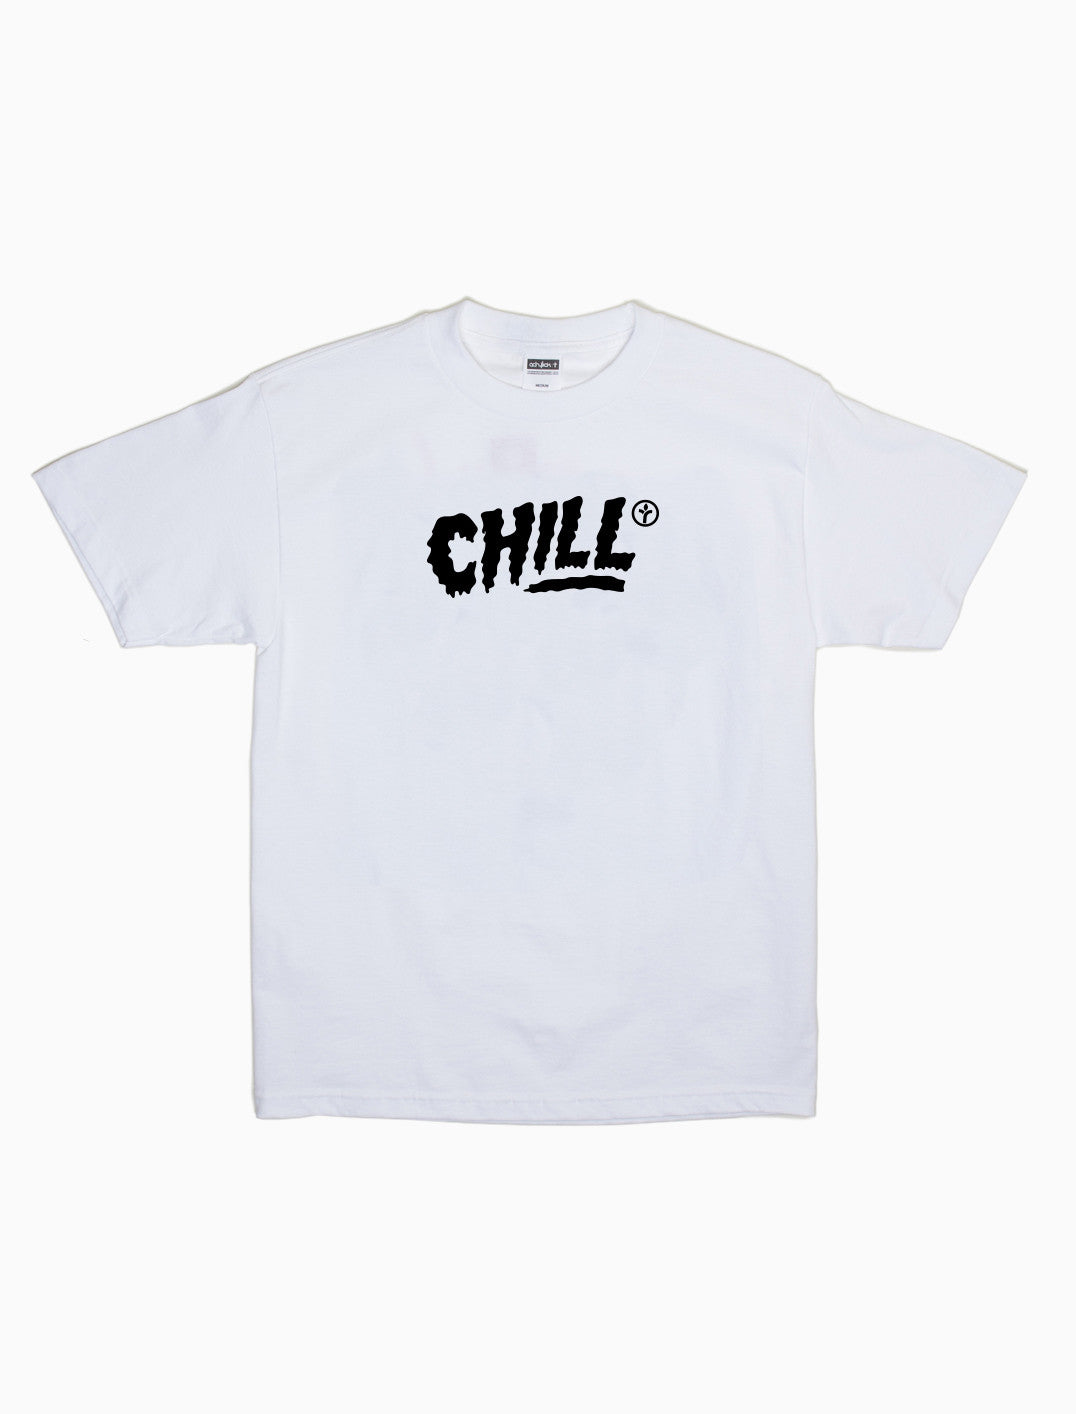 Acrylick - Chill Tee - Mens